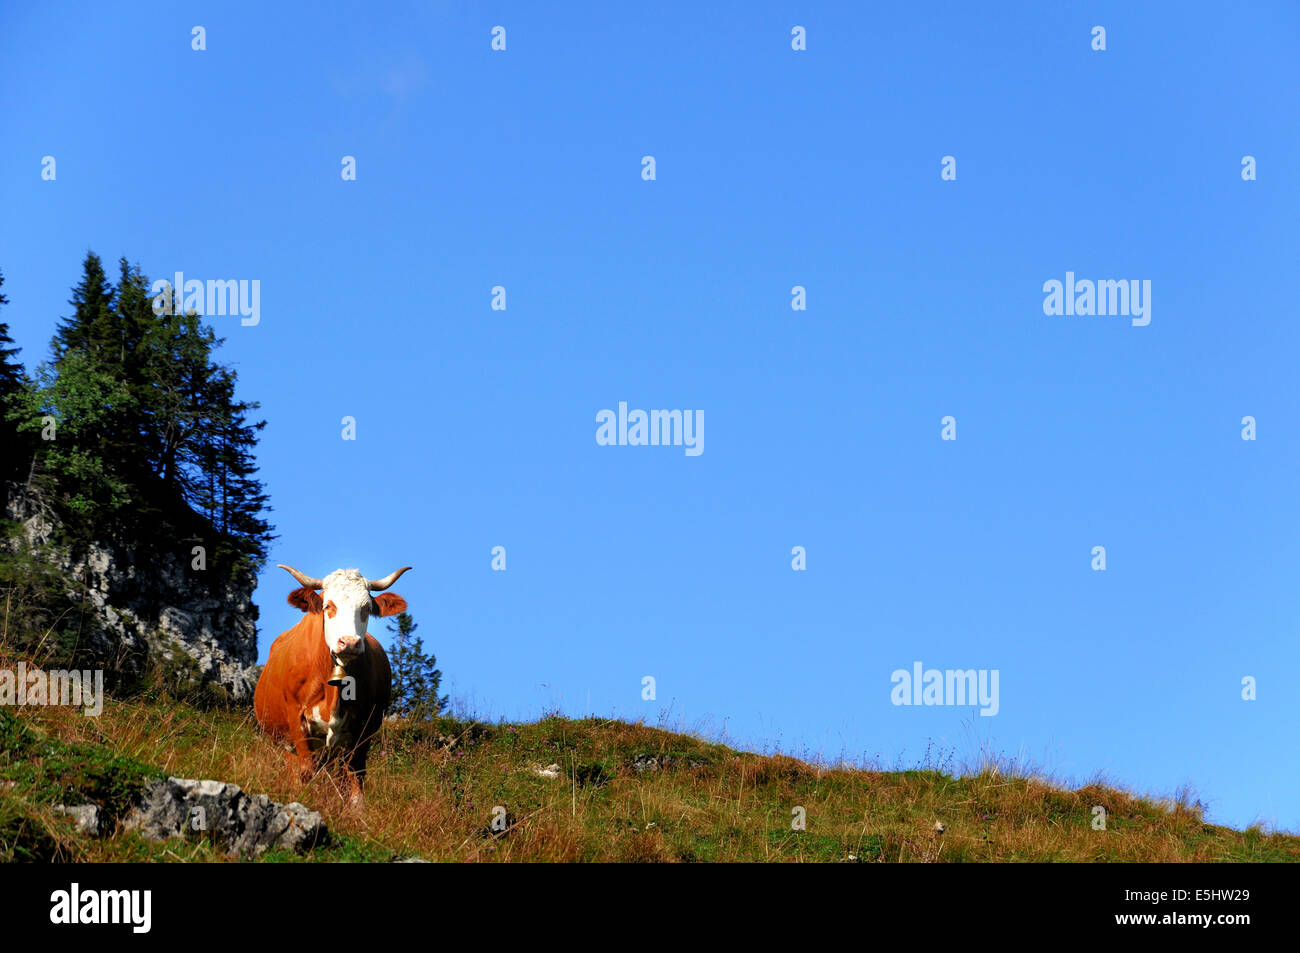 Watchful cattle in the mountains - Stock Image